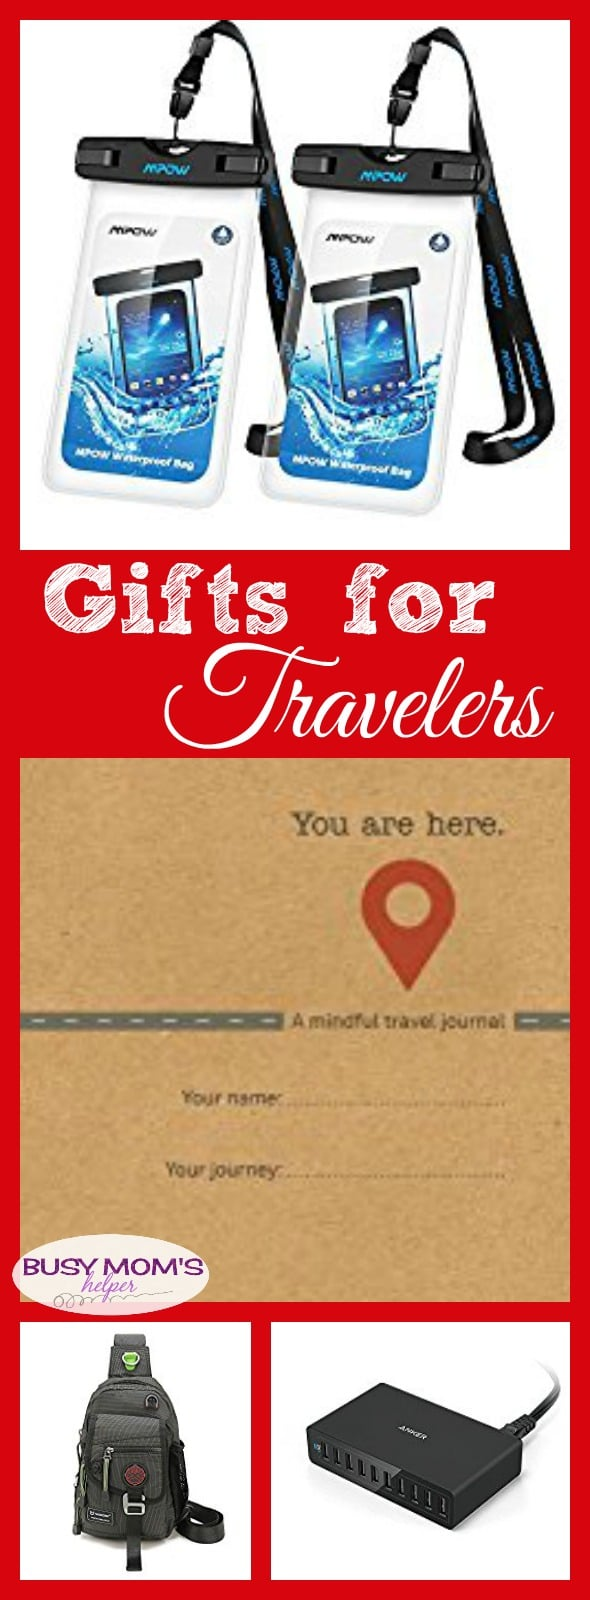 Gifts for Travelers: a 2017 holiday gift guide #ad